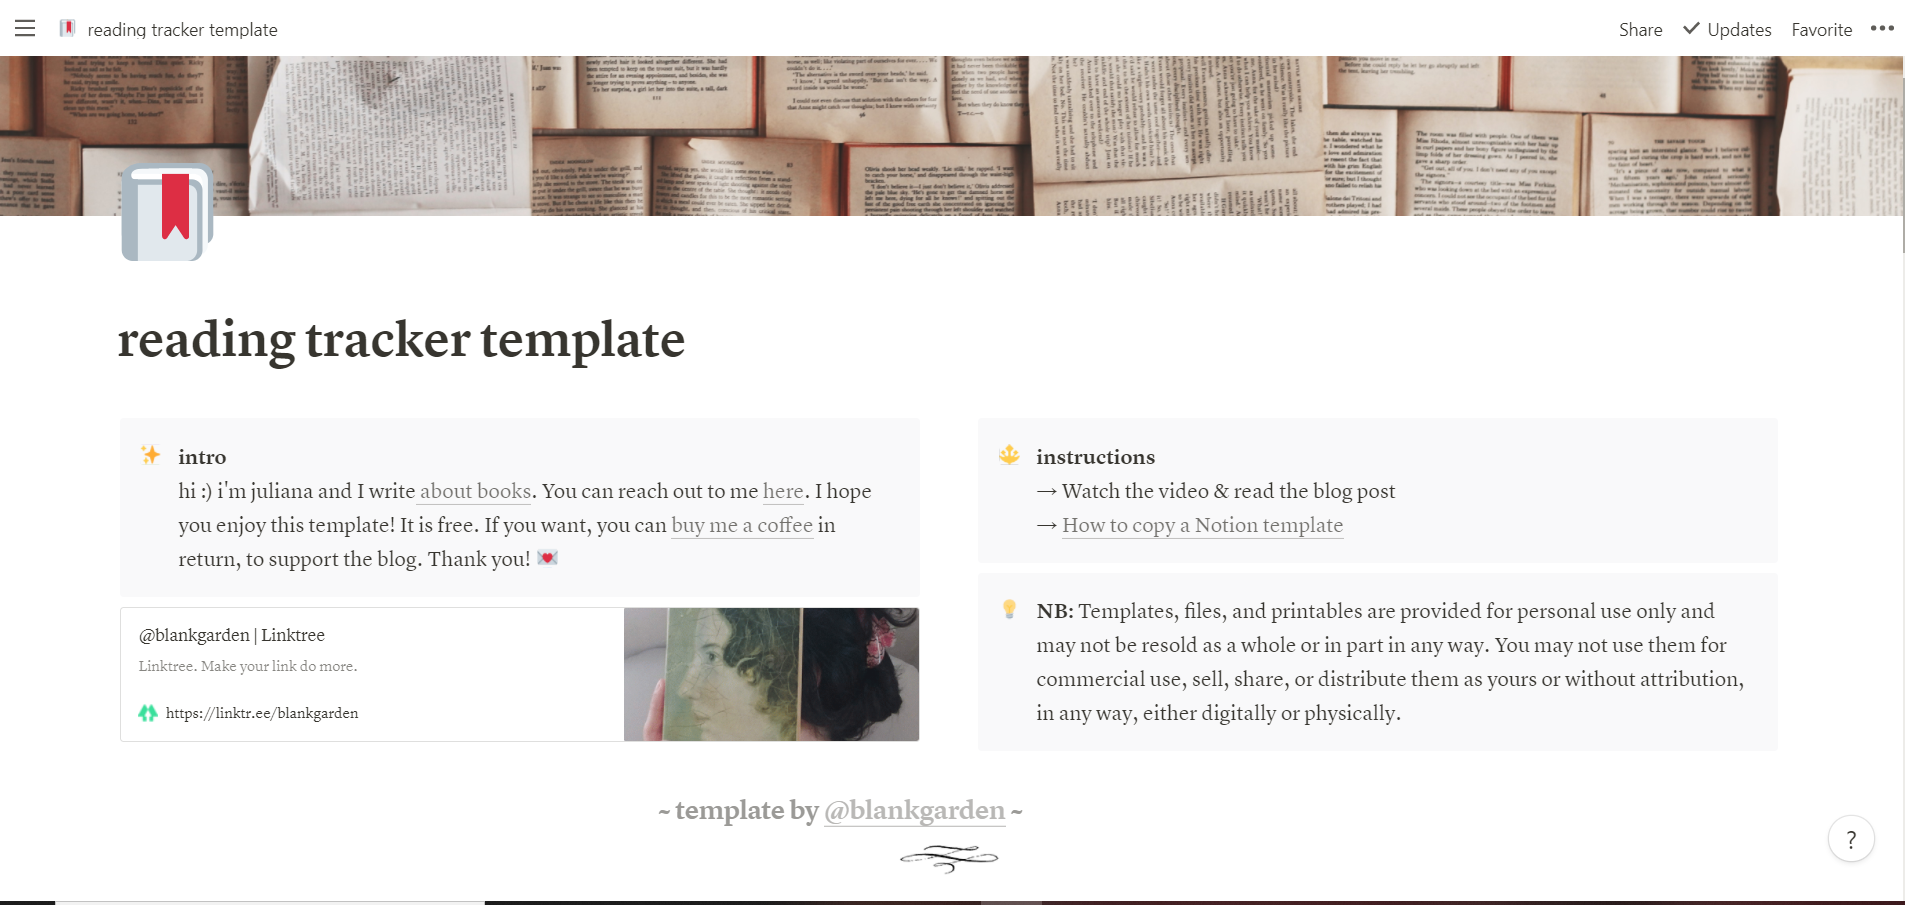 reading tracker template